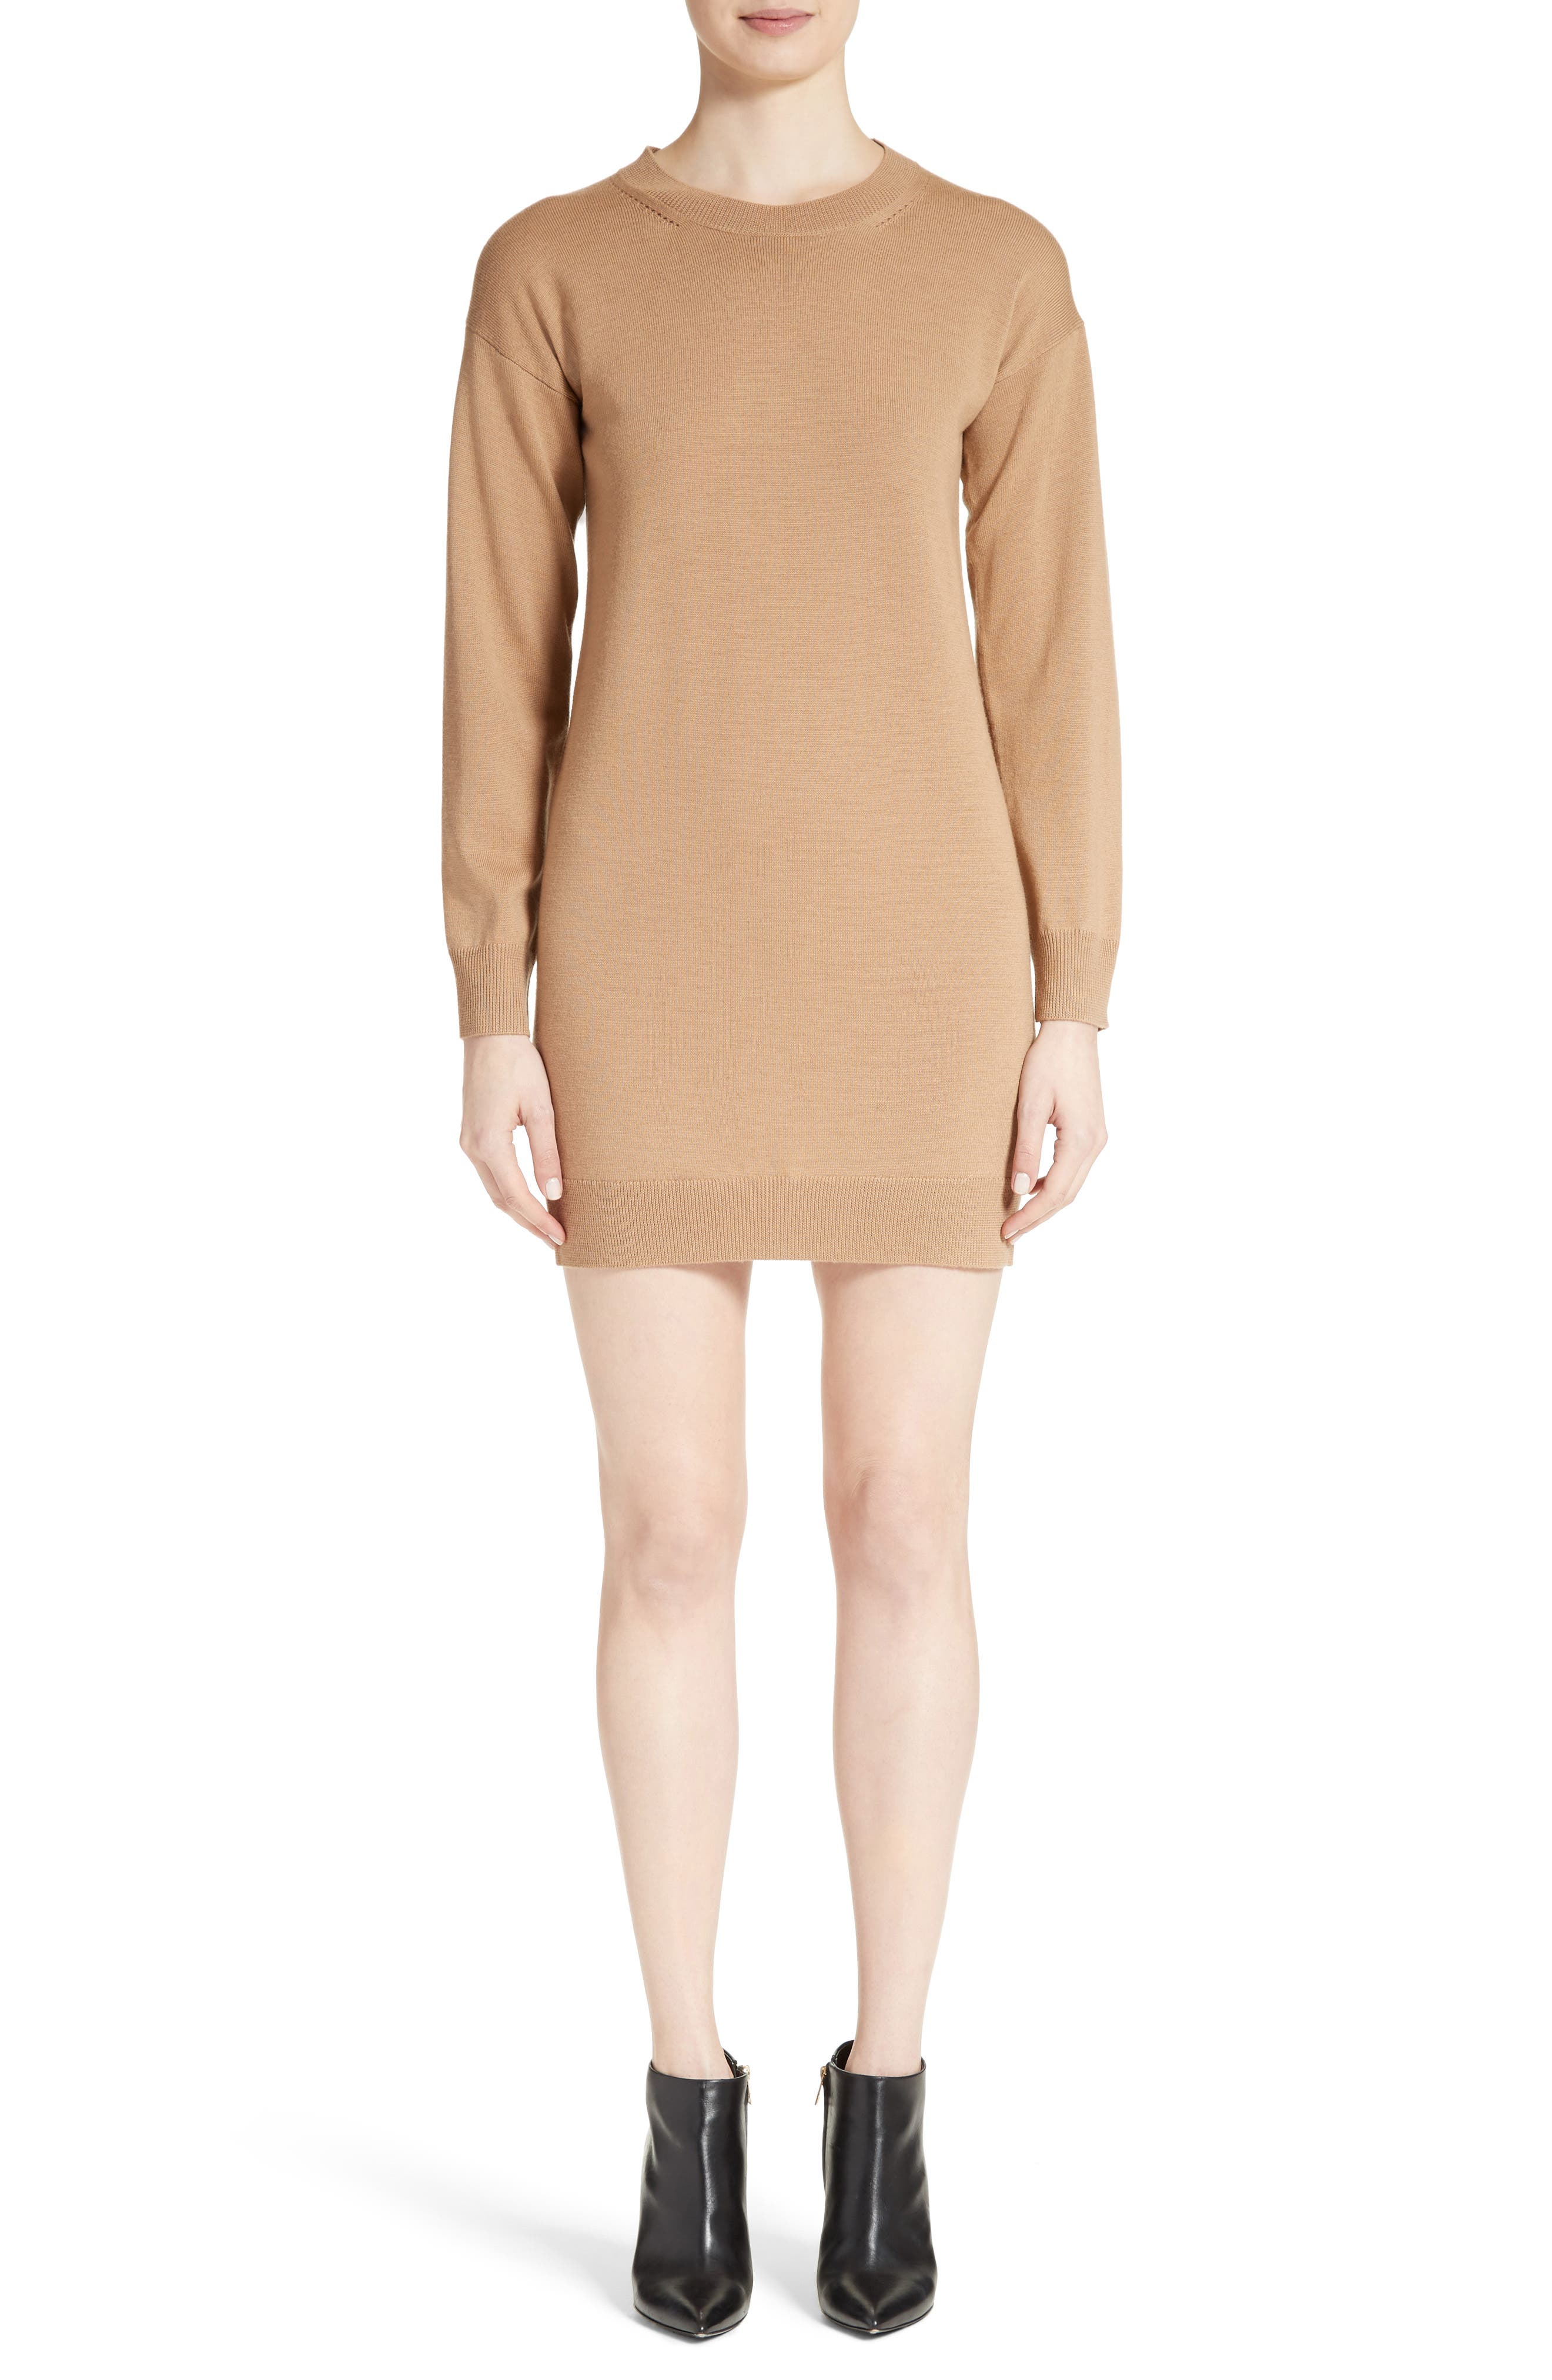 BURBERRY Alewater Elbow Patch Merino Wool Dress, Main, color, CAMEL